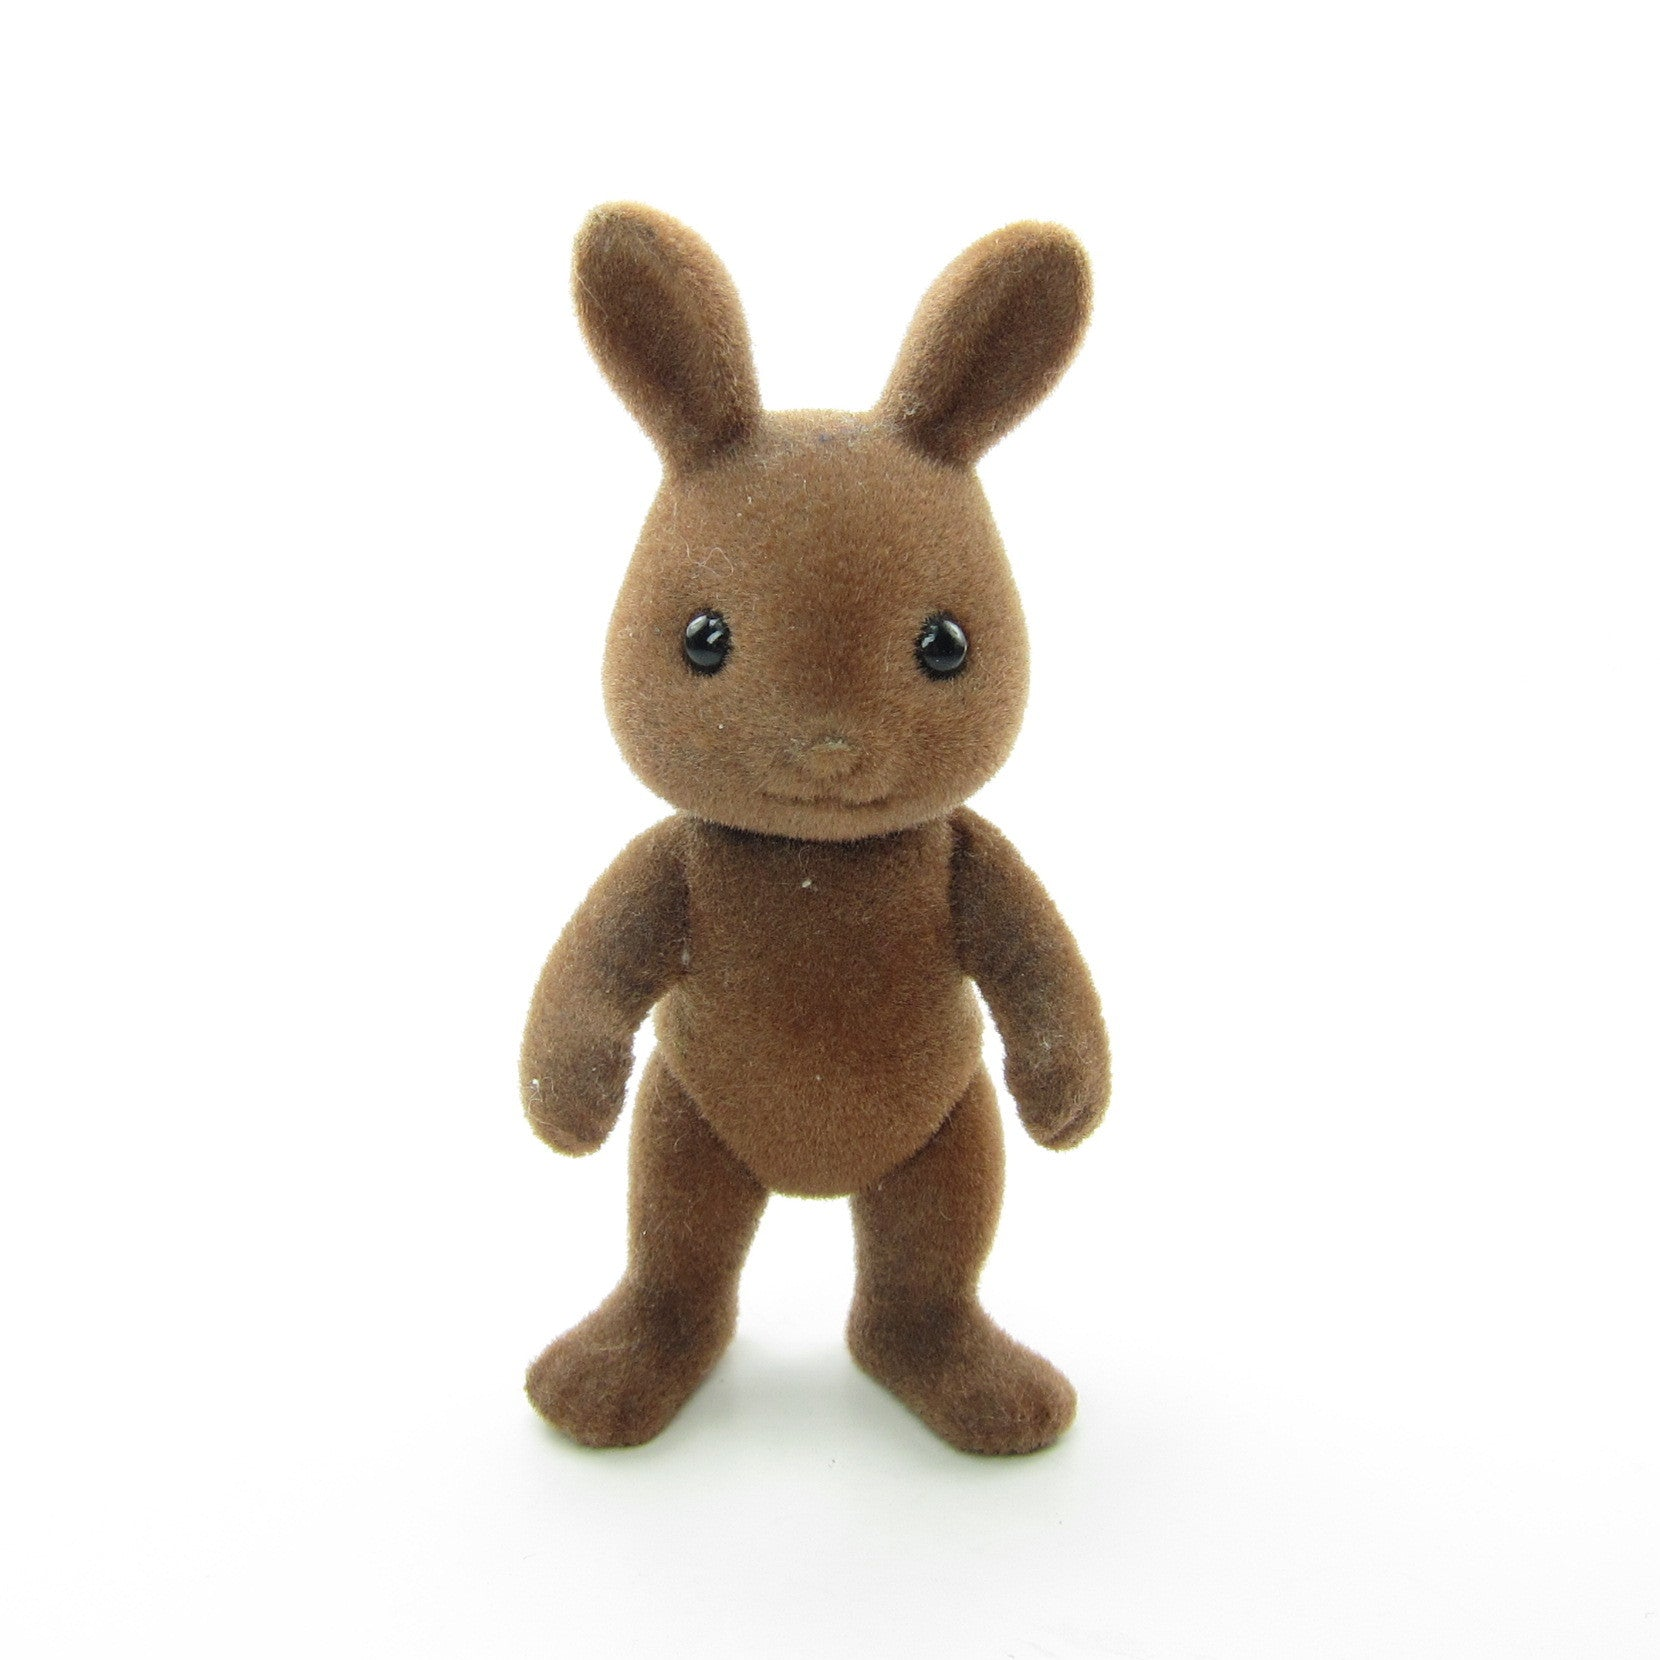 Wildwood brown rabbit